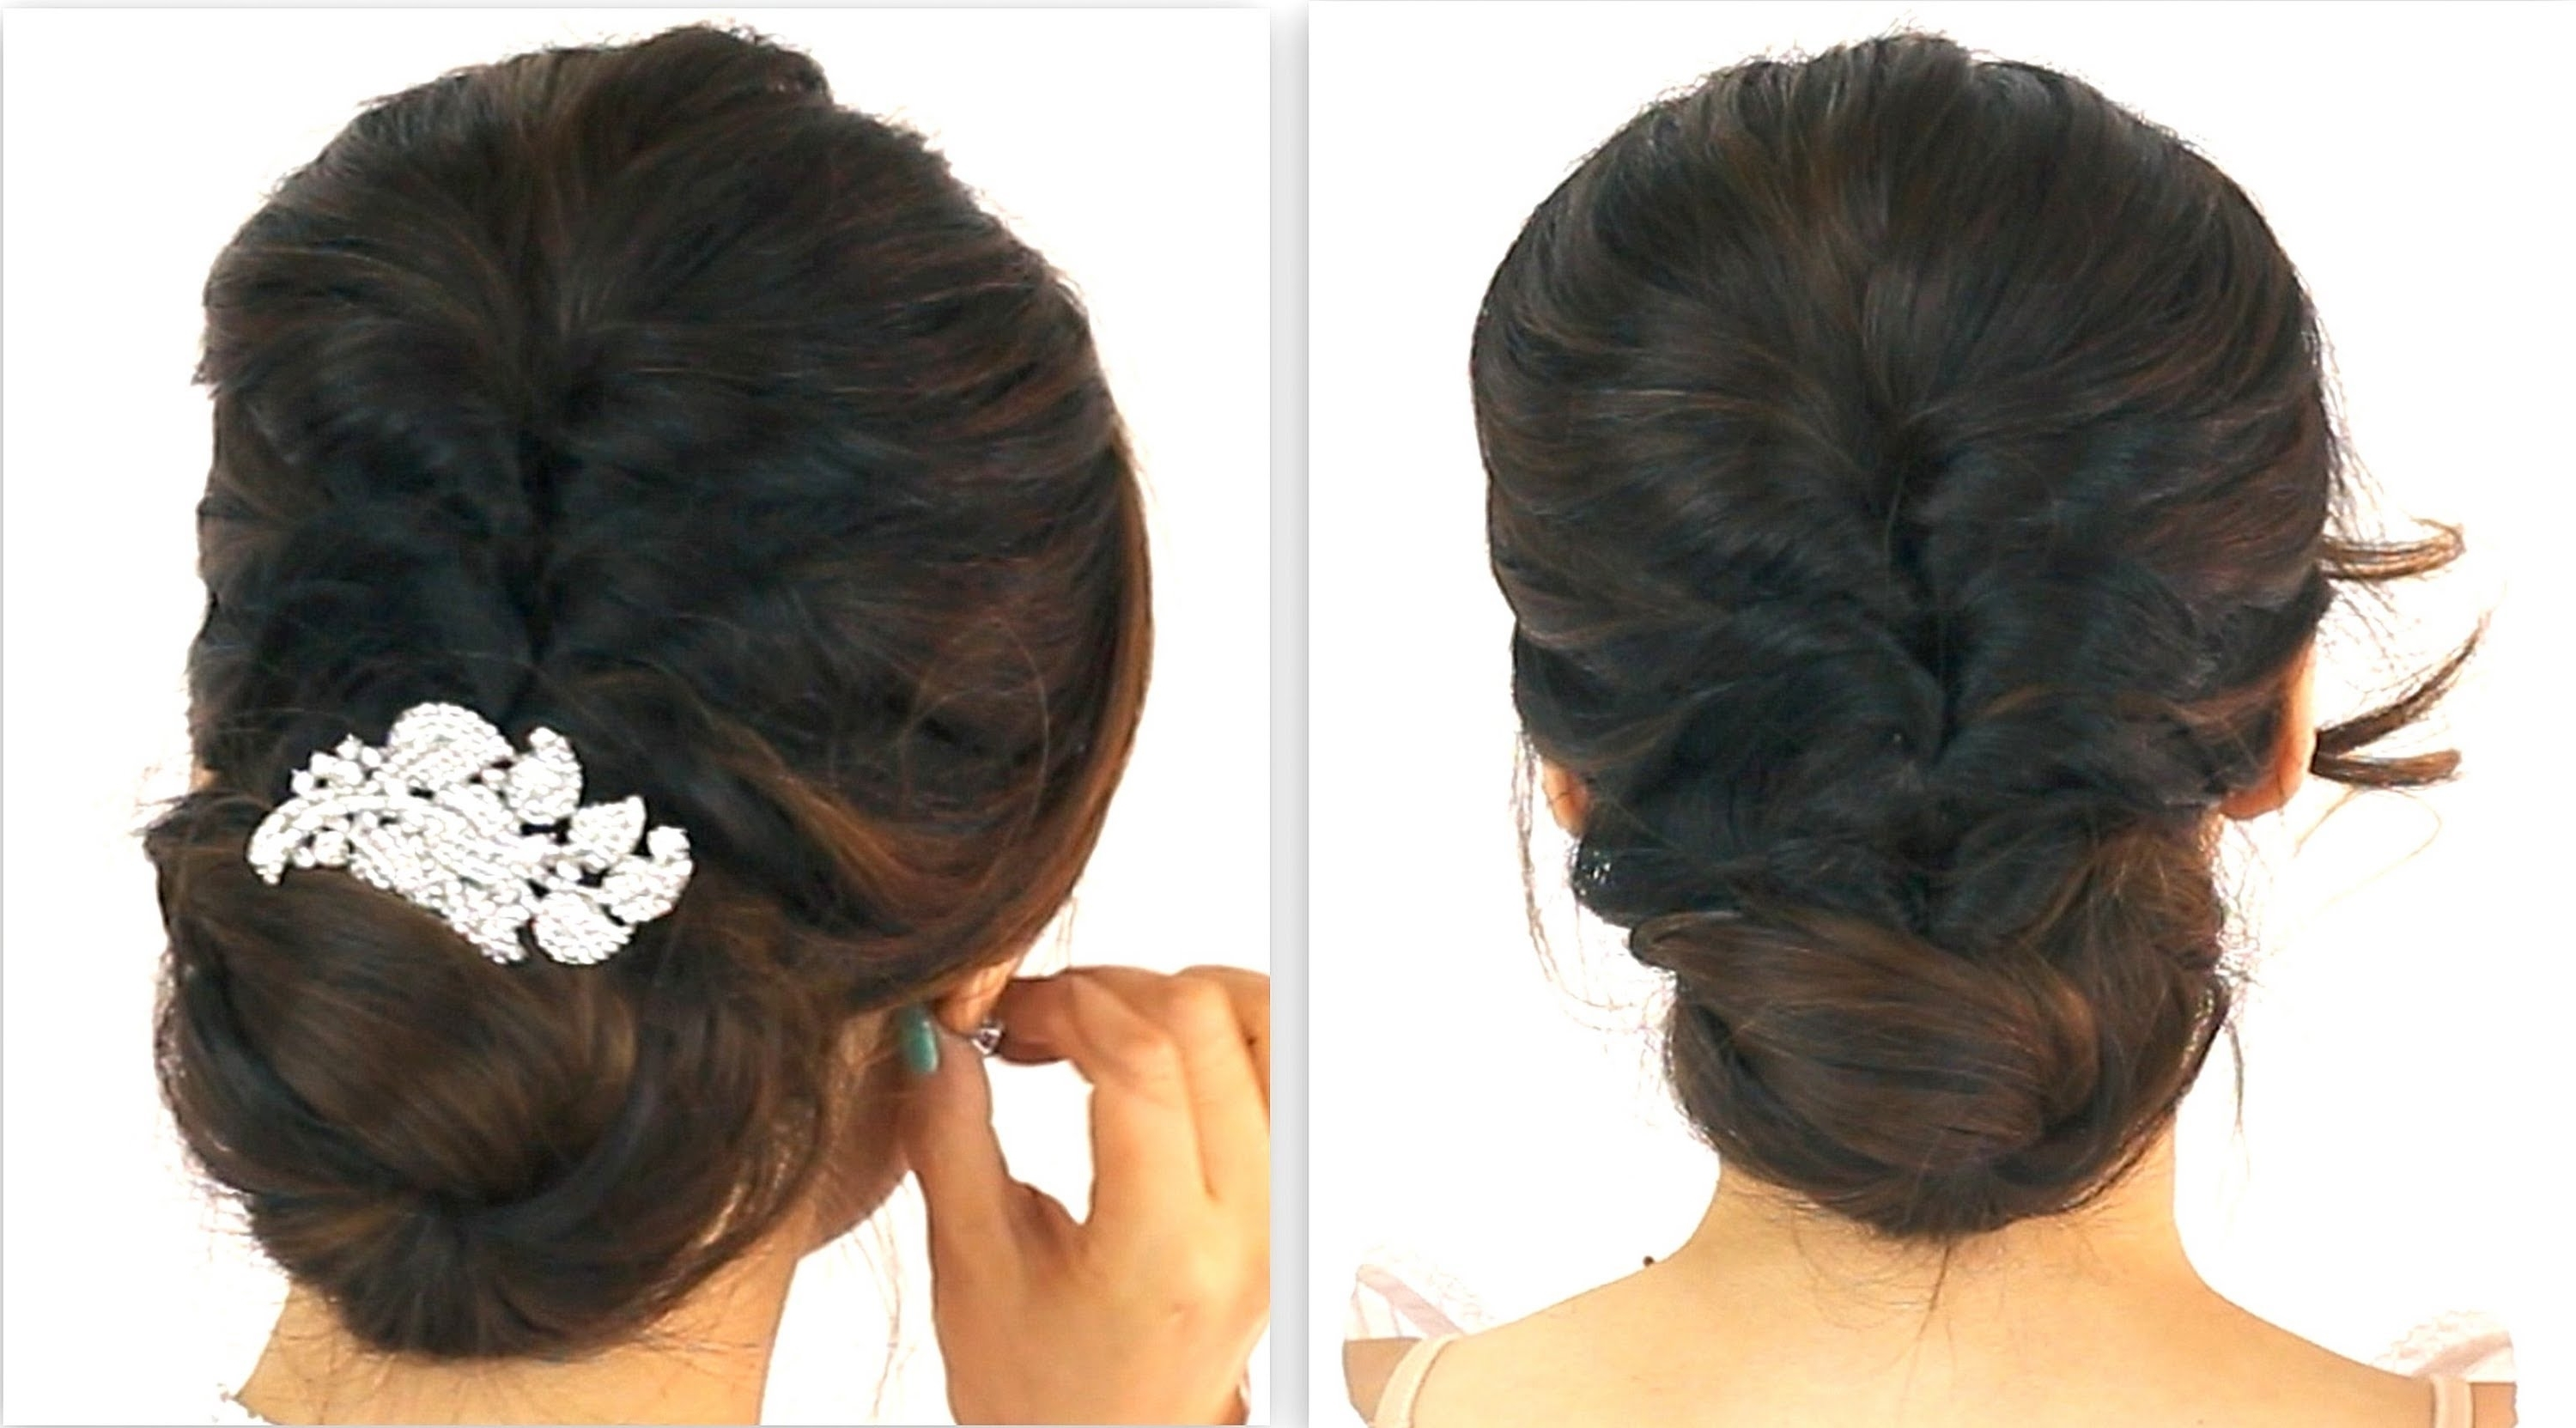 Up Hairstyles For Long Hair Updo Wedding Unbelievable In A Bun Easy Pertaining To Simple Updo Hairstyles For Long Hair (View 10 of 15)